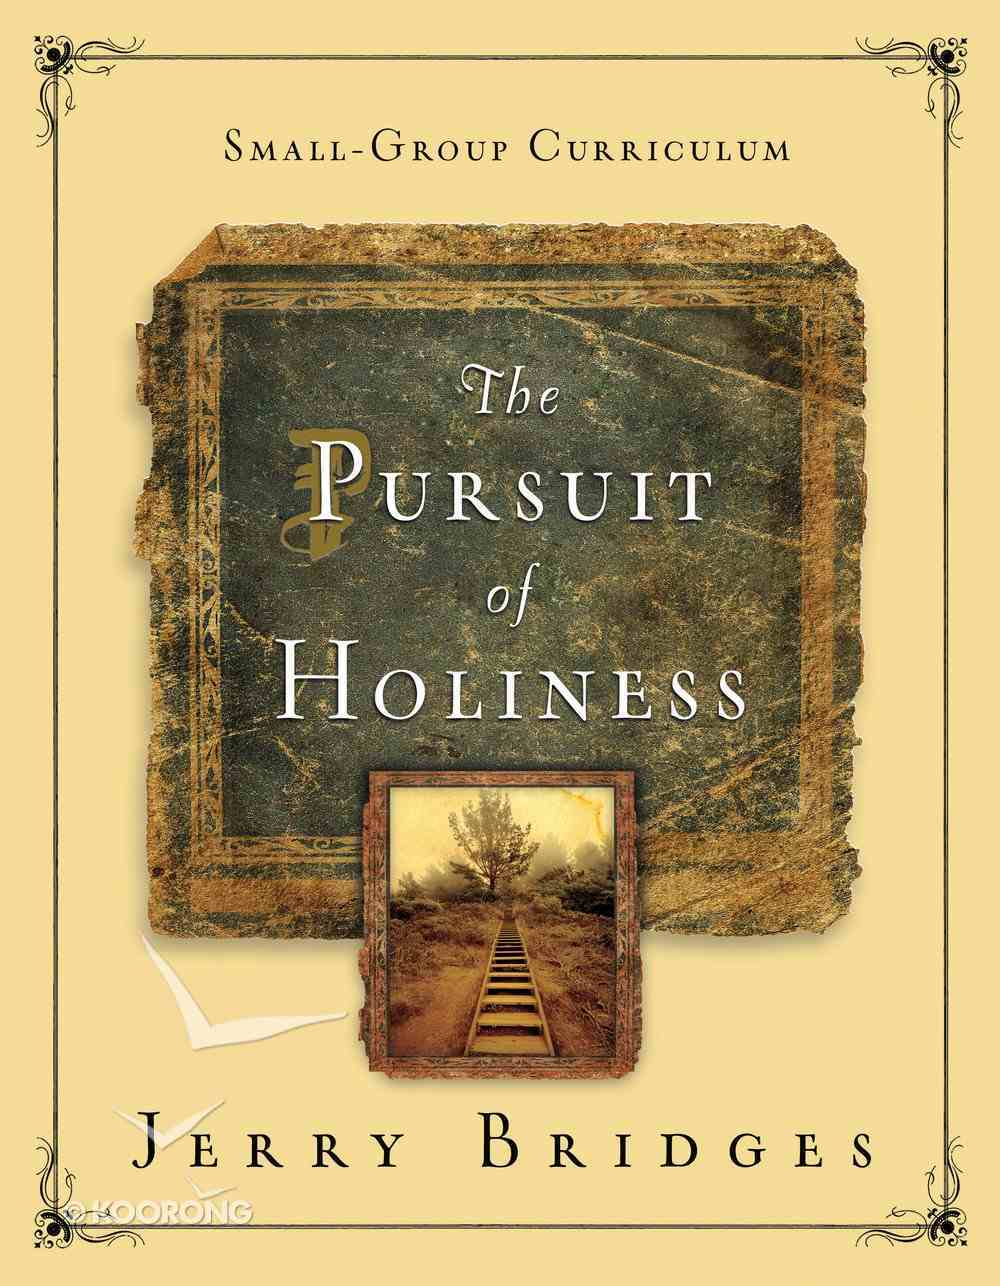 The Pursuit of Holiness Small-Group Curriculum Paperback